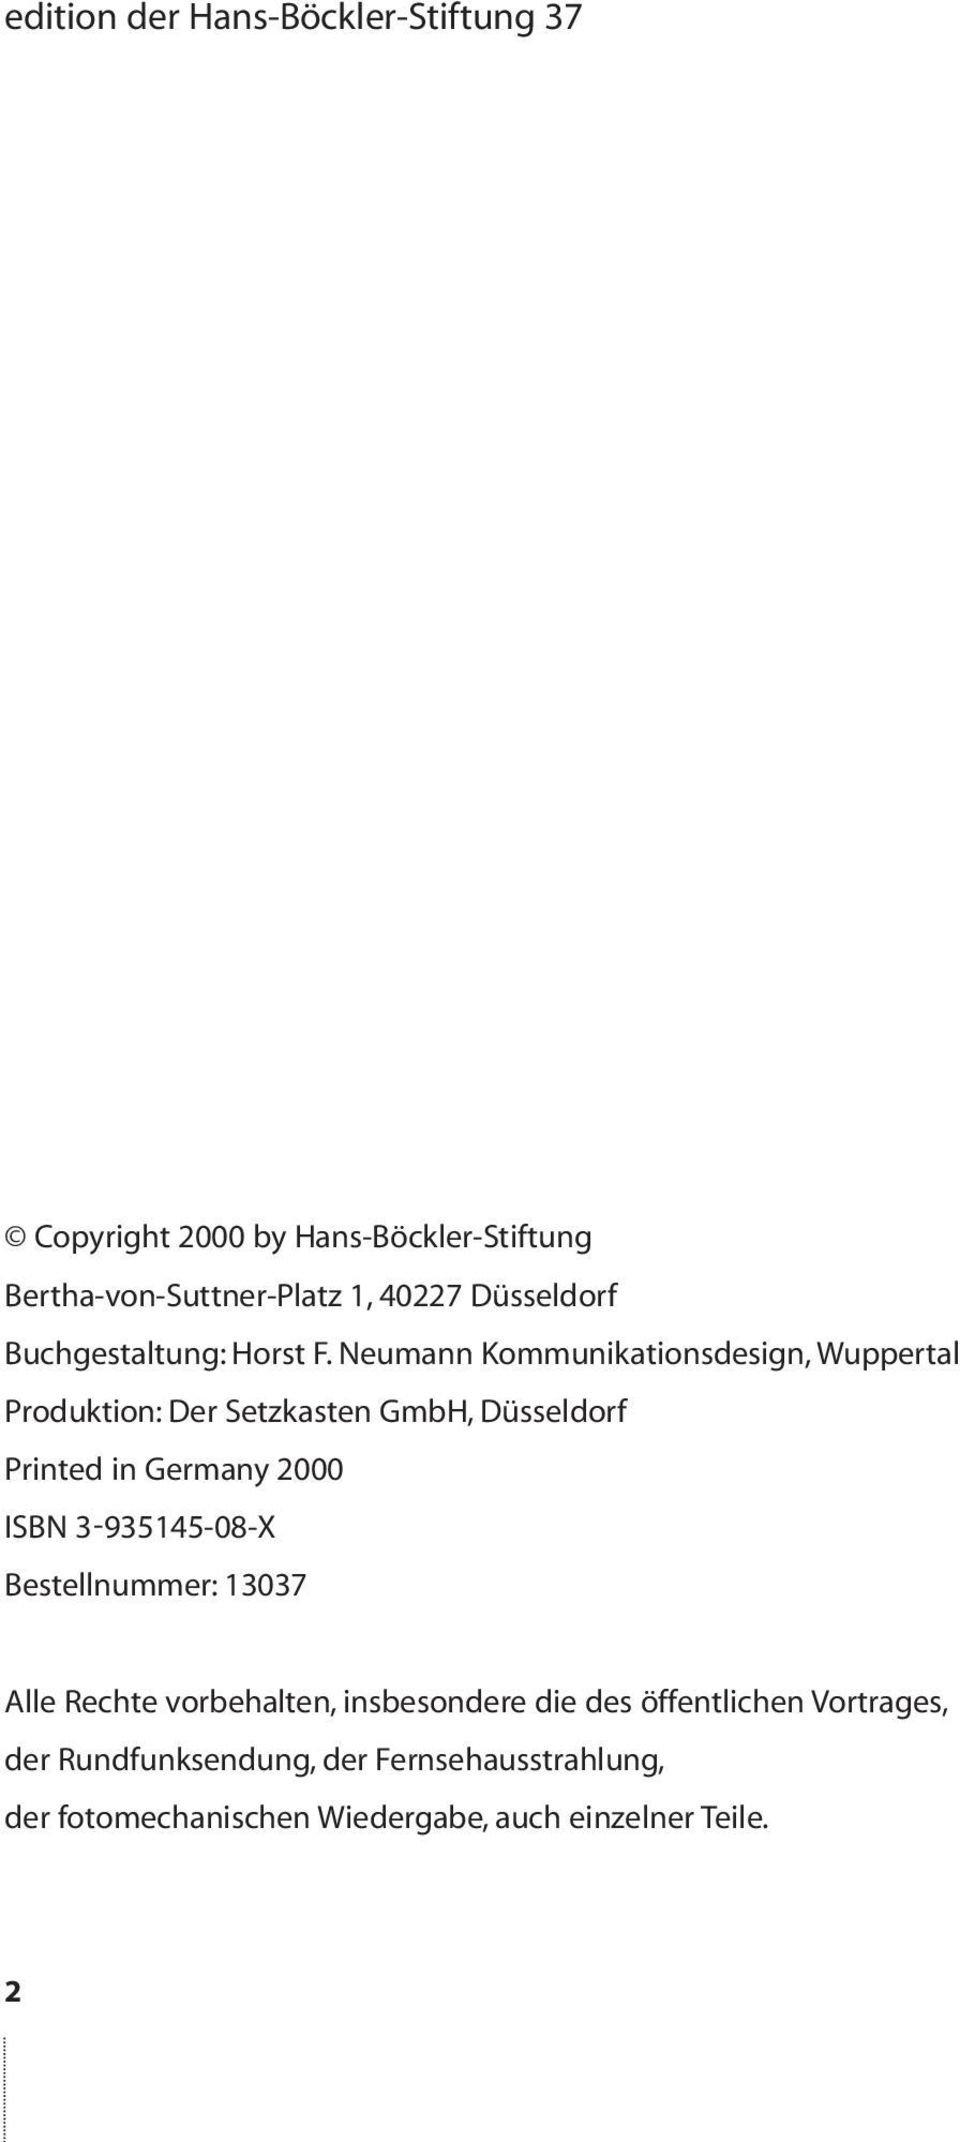 Neumann Kommunikationsdesign, Wuppertal Produktion: Der Setzkasten GmbH, Düsseldorf Printed in Germany 2000 ISBN